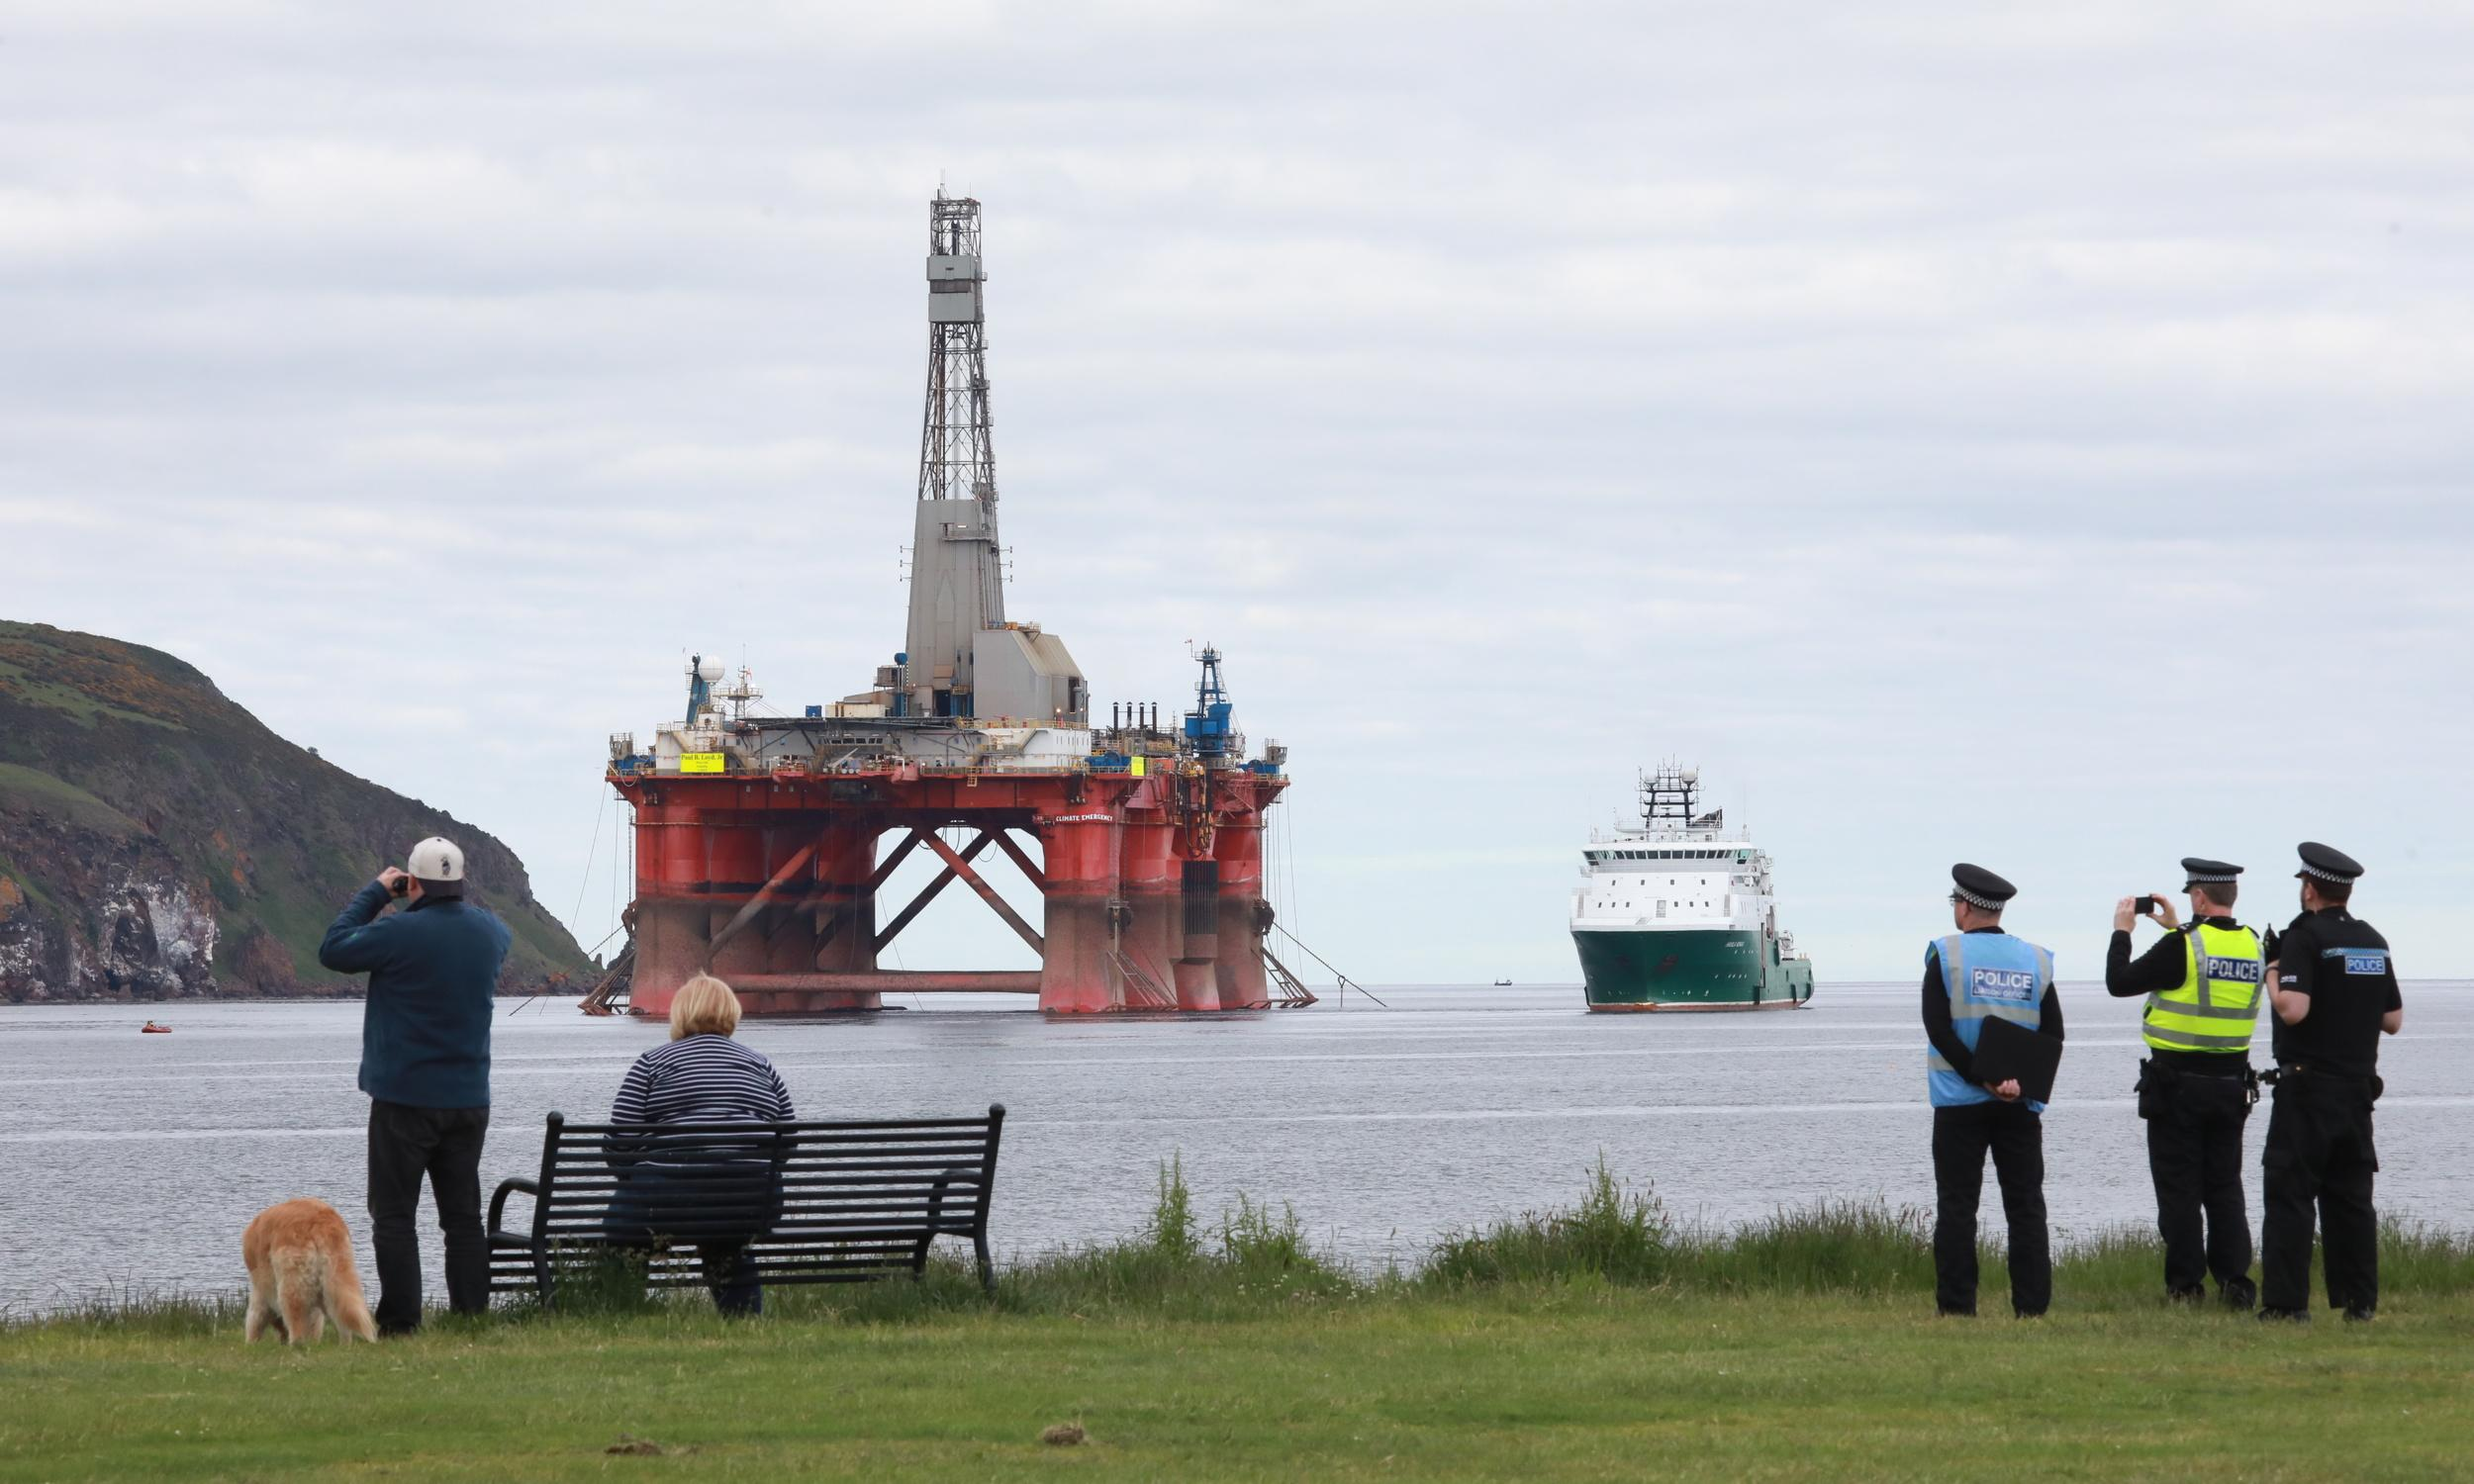 Scottish court asked to jail Greenpeace chiefs over North Sea protest